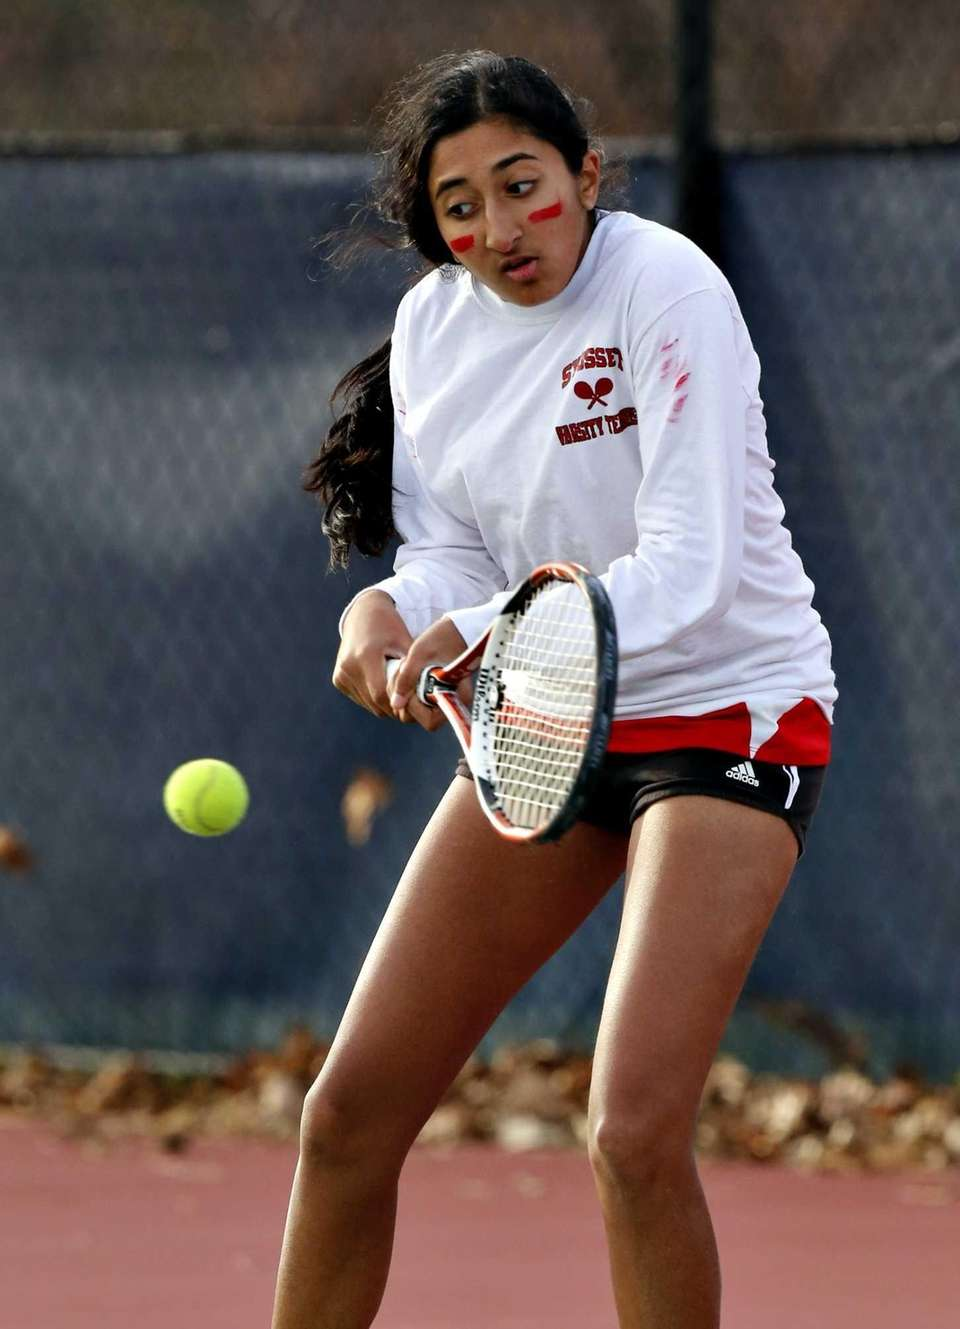 Syosset second singles player Rithika Reddy hits a